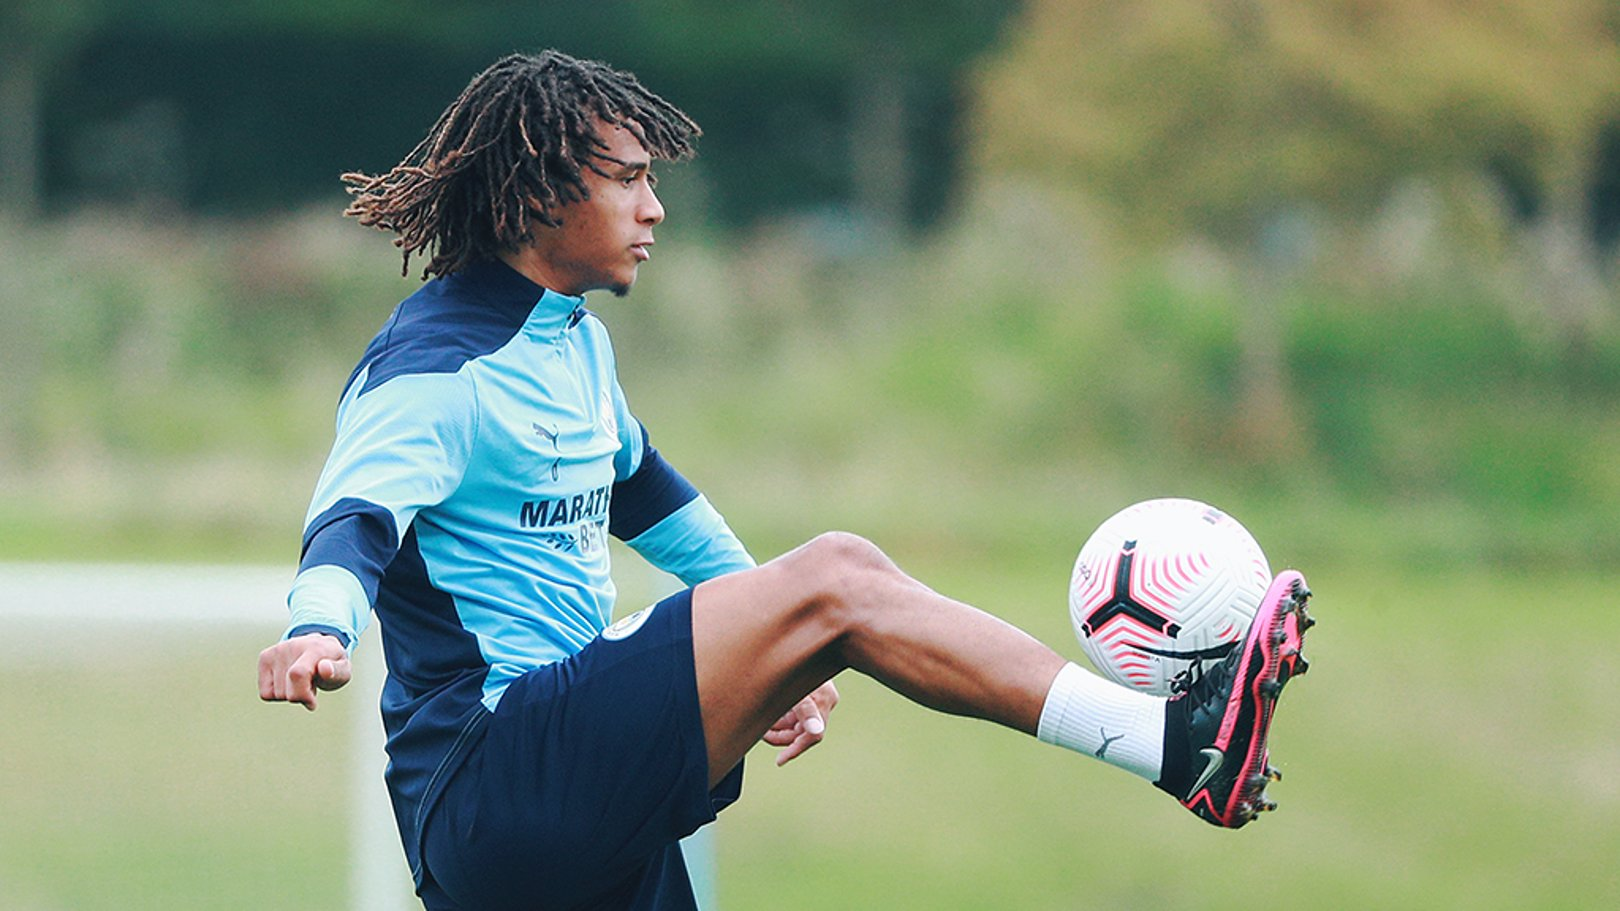 Ake starts for City - Torres on the bench